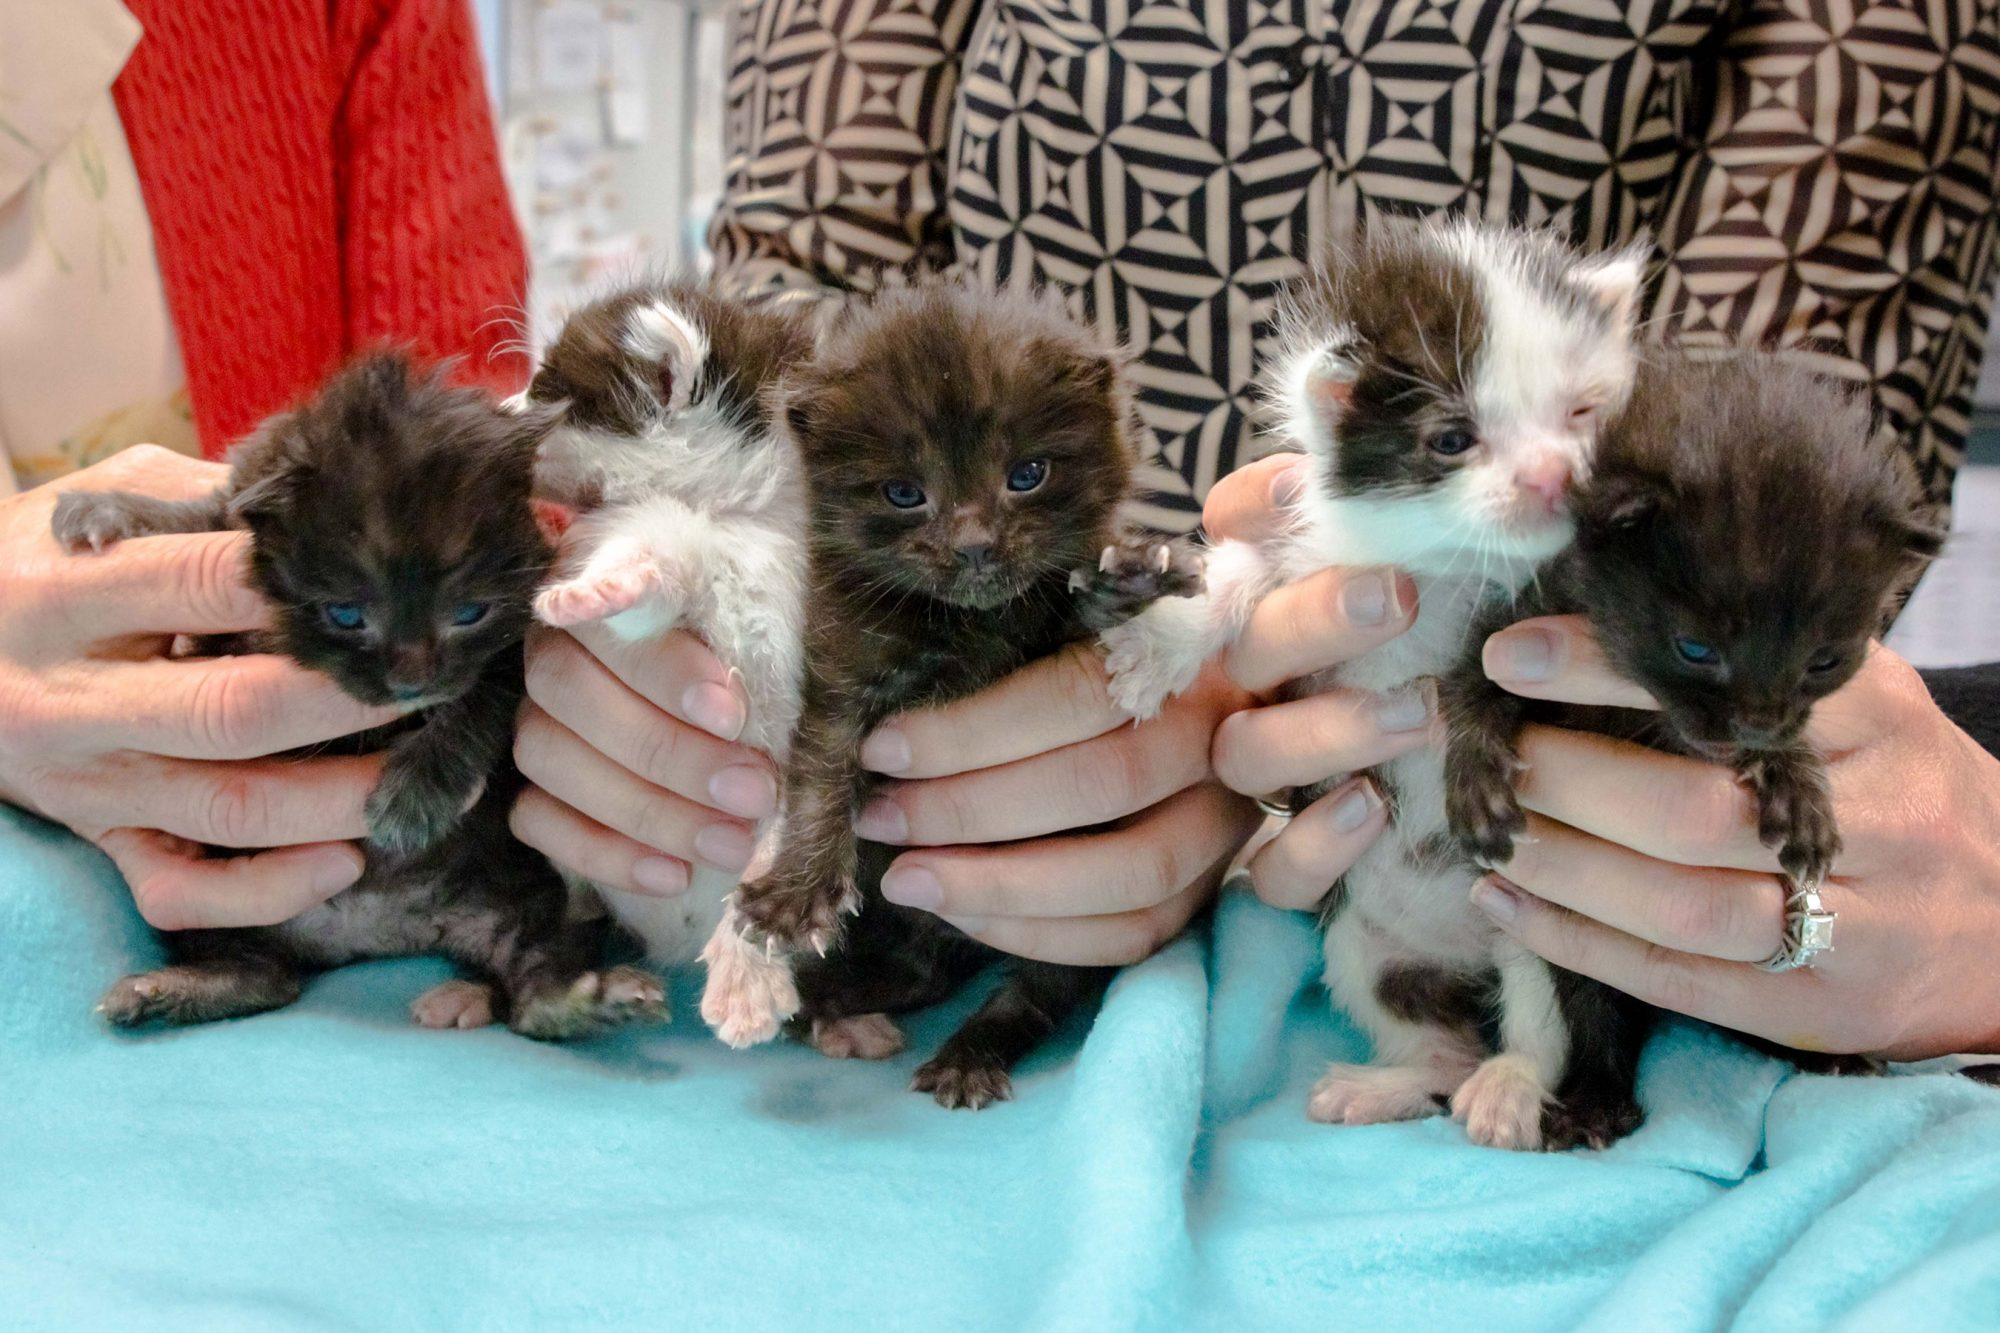 Construction workers were shocked to discover a litter of kittens stowed away on their truck after driving from Hayward, Calif. to San Diego.